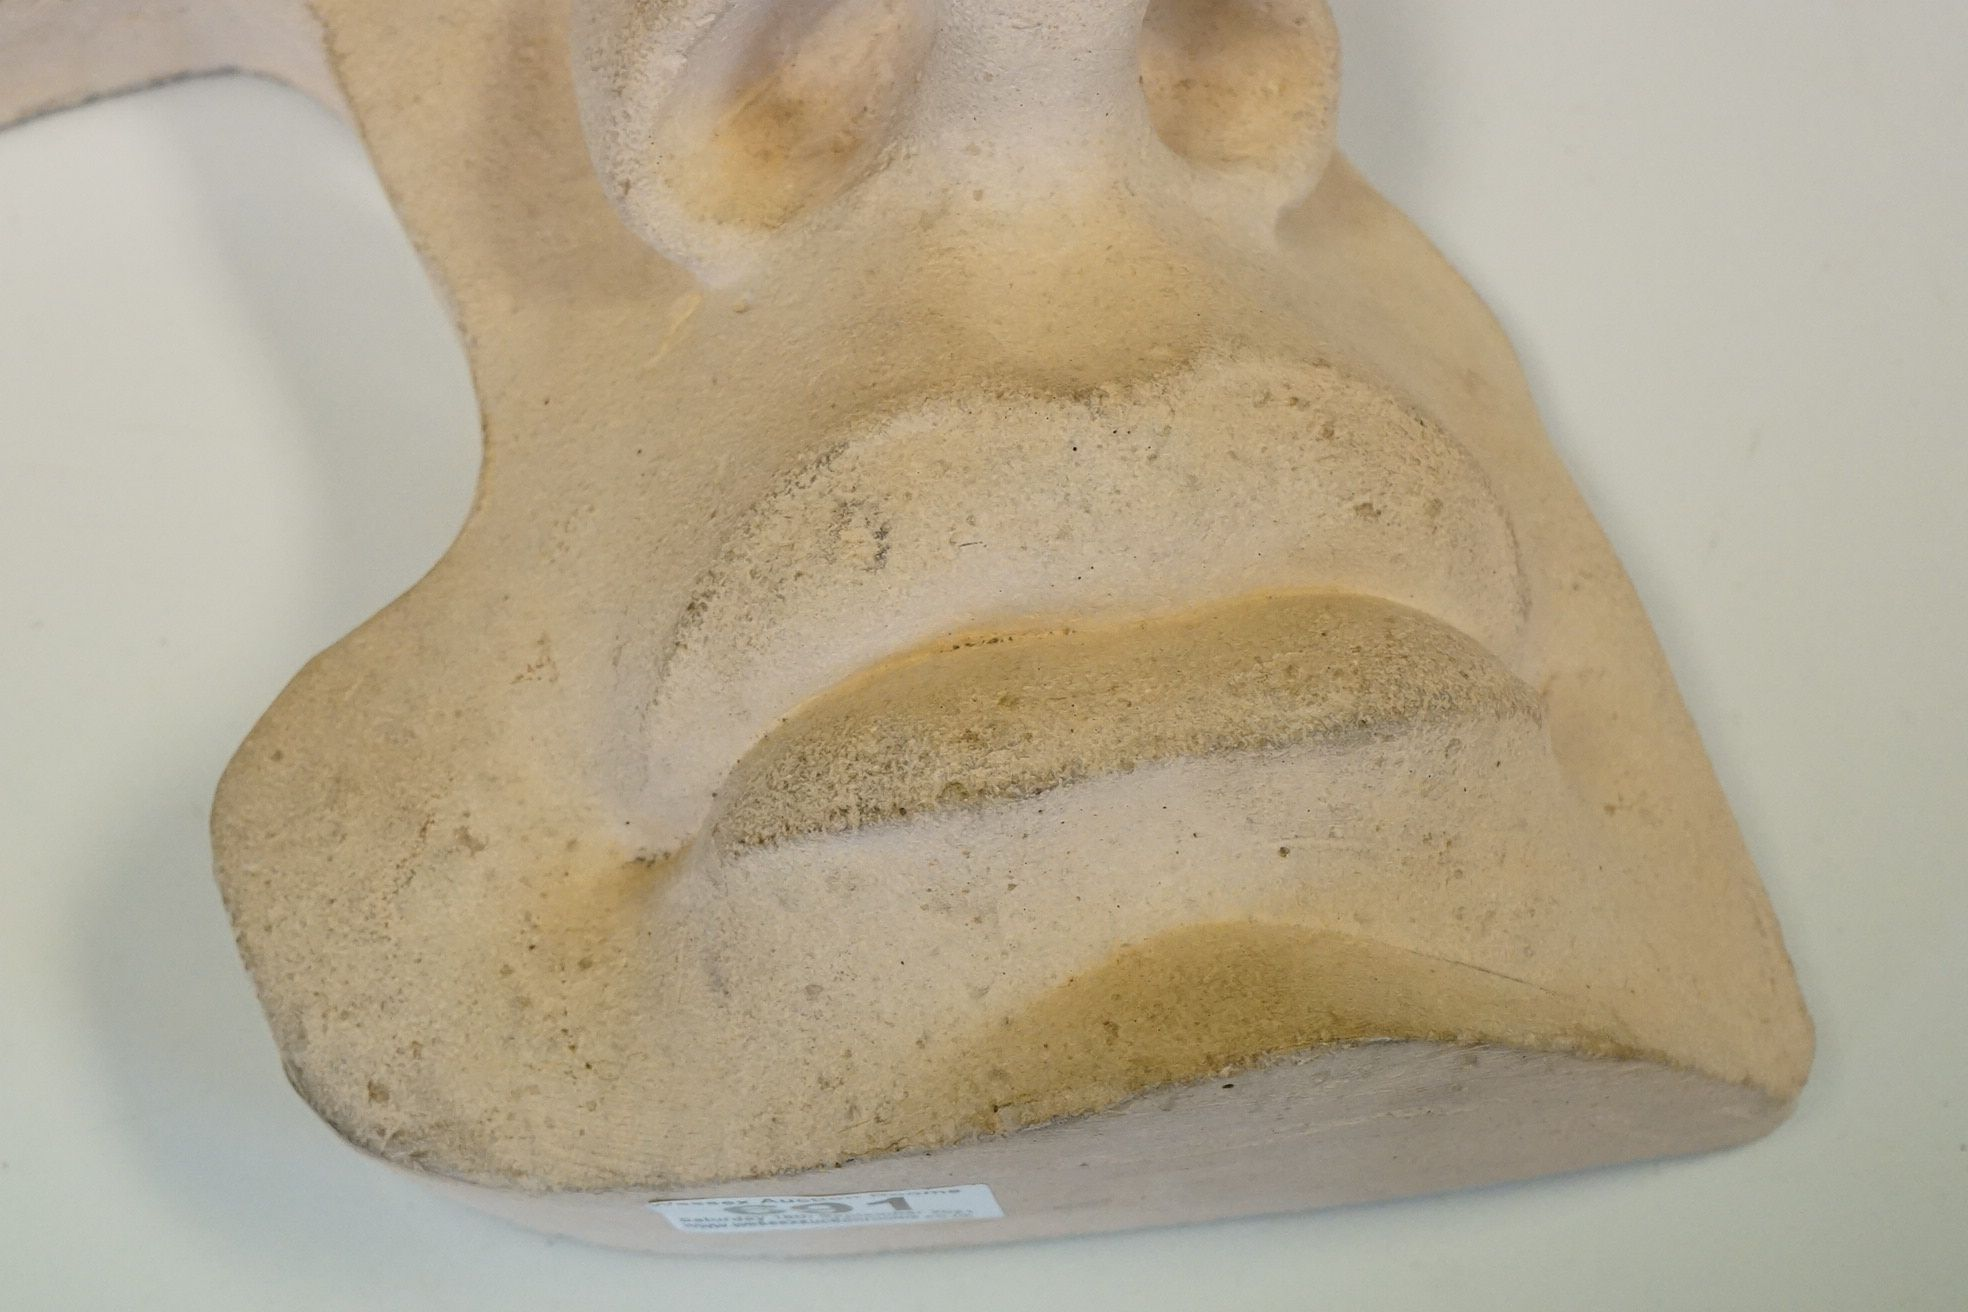 Contemporary stone sculpture of an opera mask / facial figure - Image 4 of 4